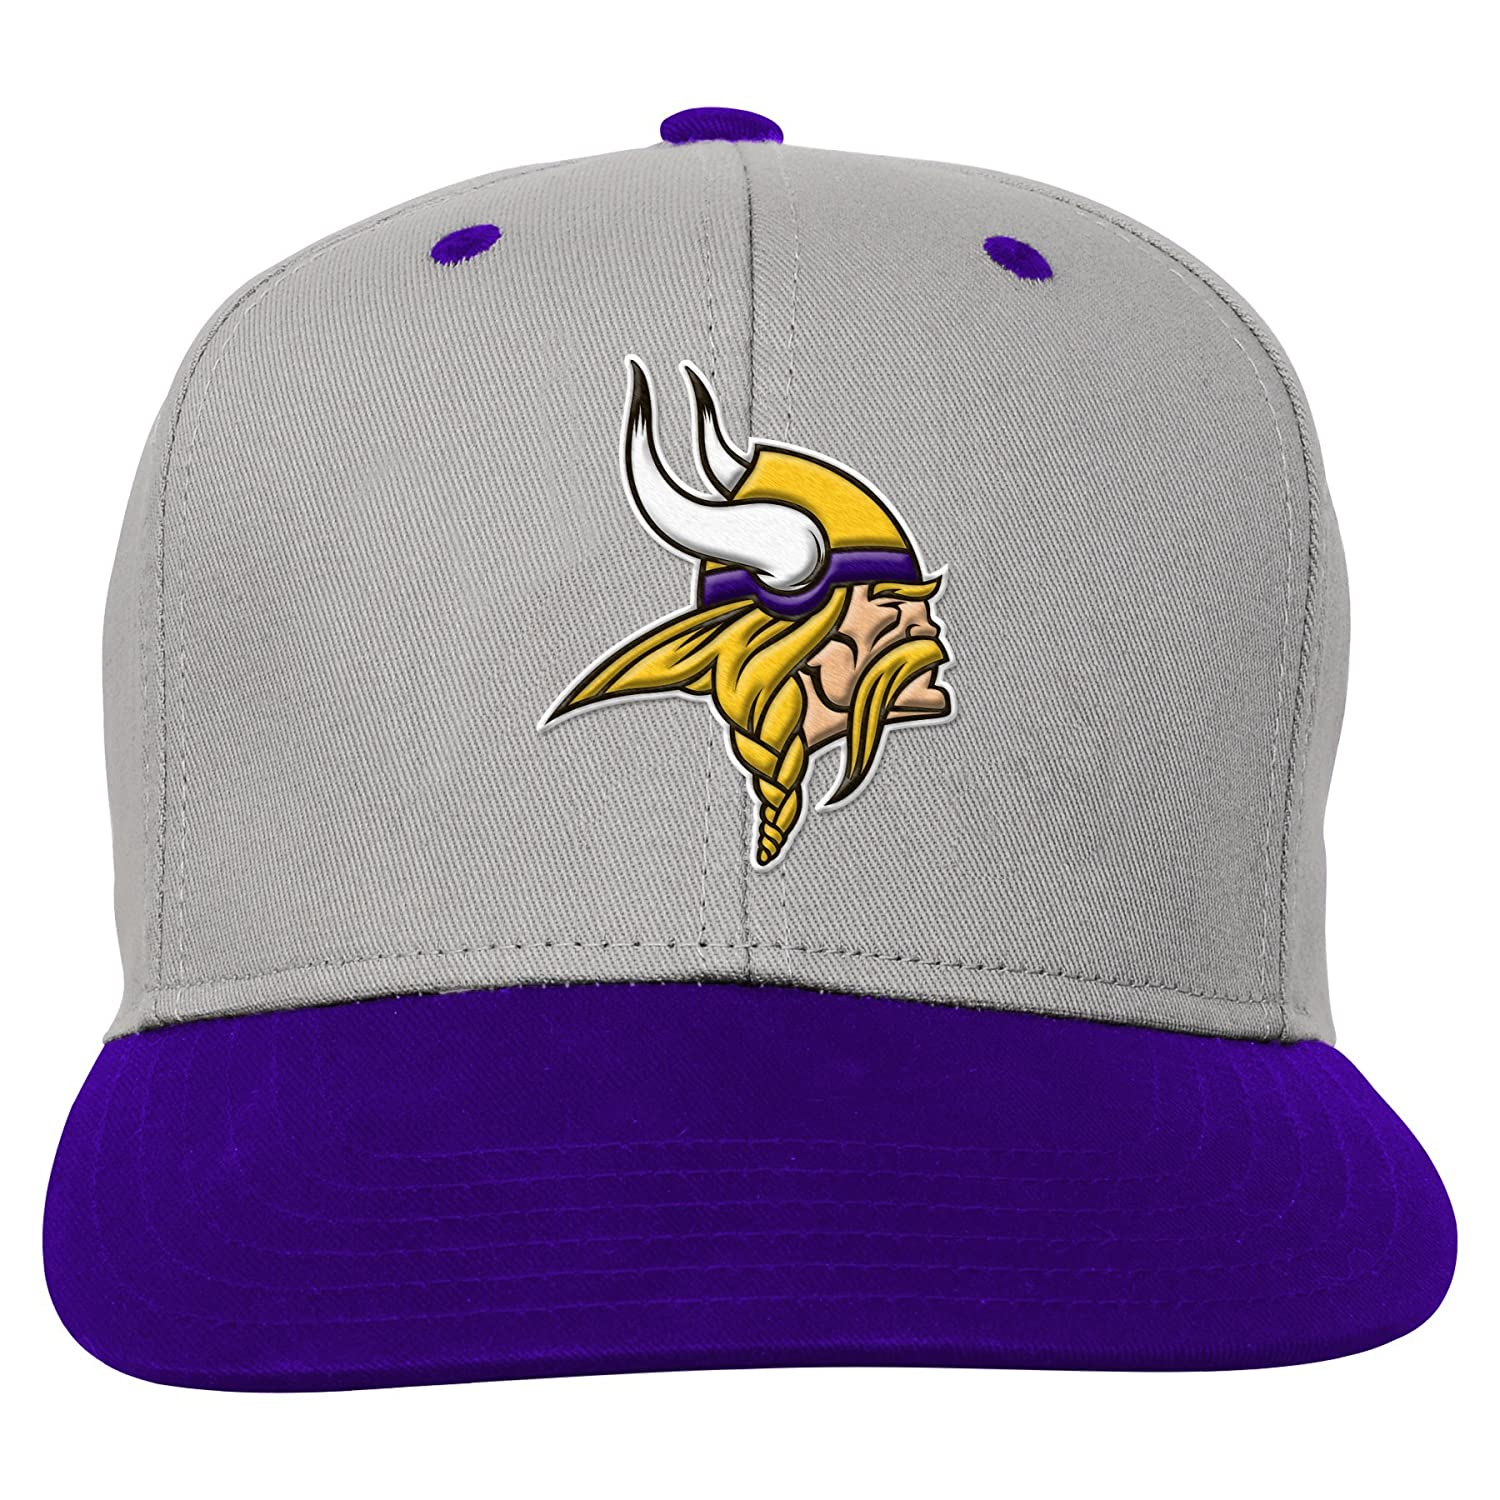 Outerstuff NFL Teen-Boys Team Flatbrim Snapback Hat